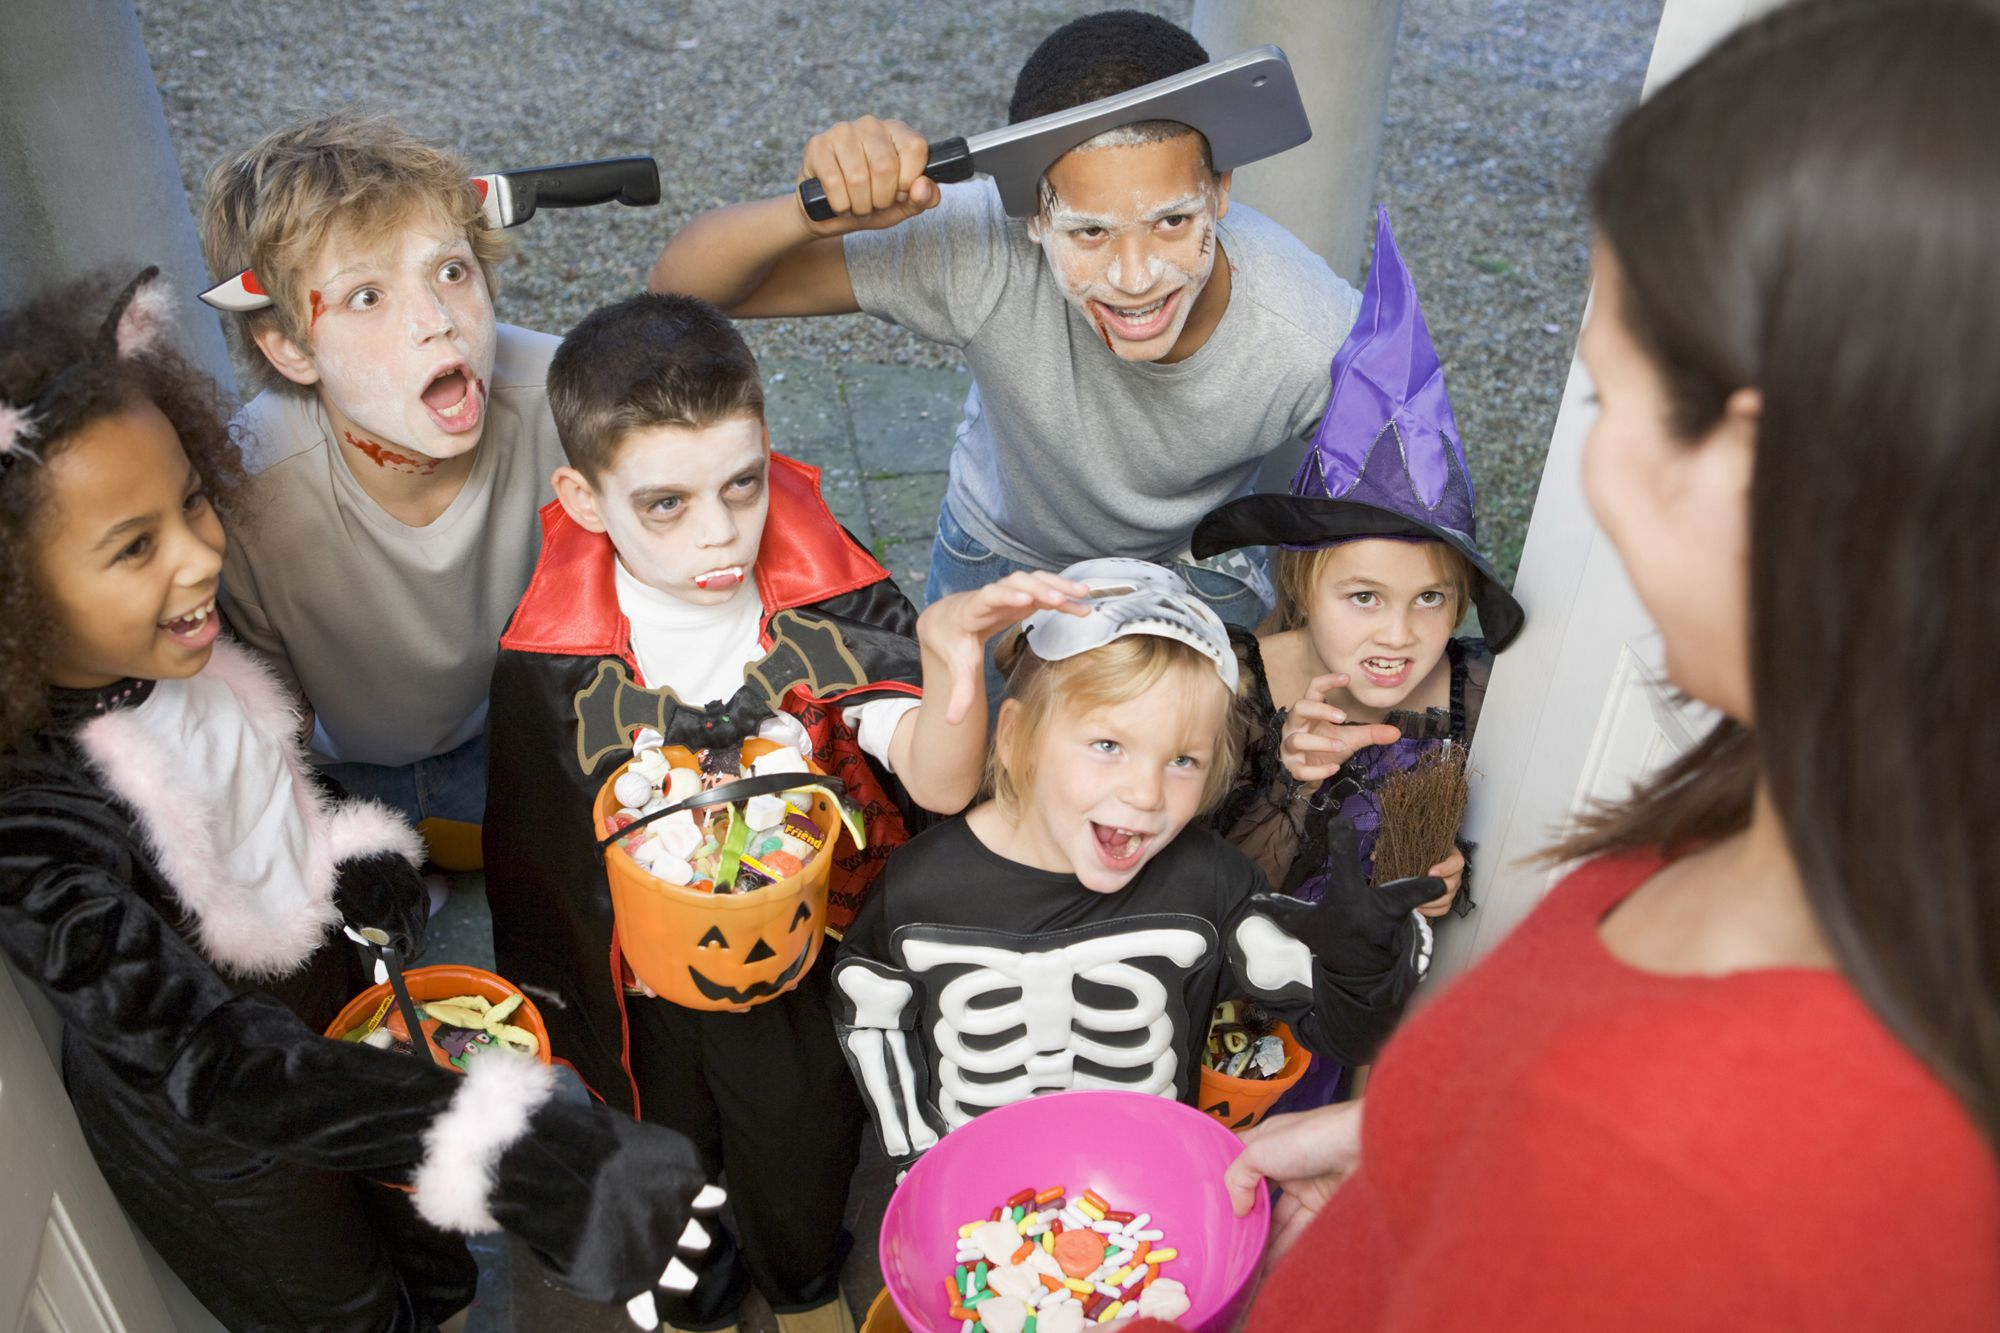 A Step-By-Step Guide To Trick-Or-Treating | Trick-or-Treating Costumes For Kids